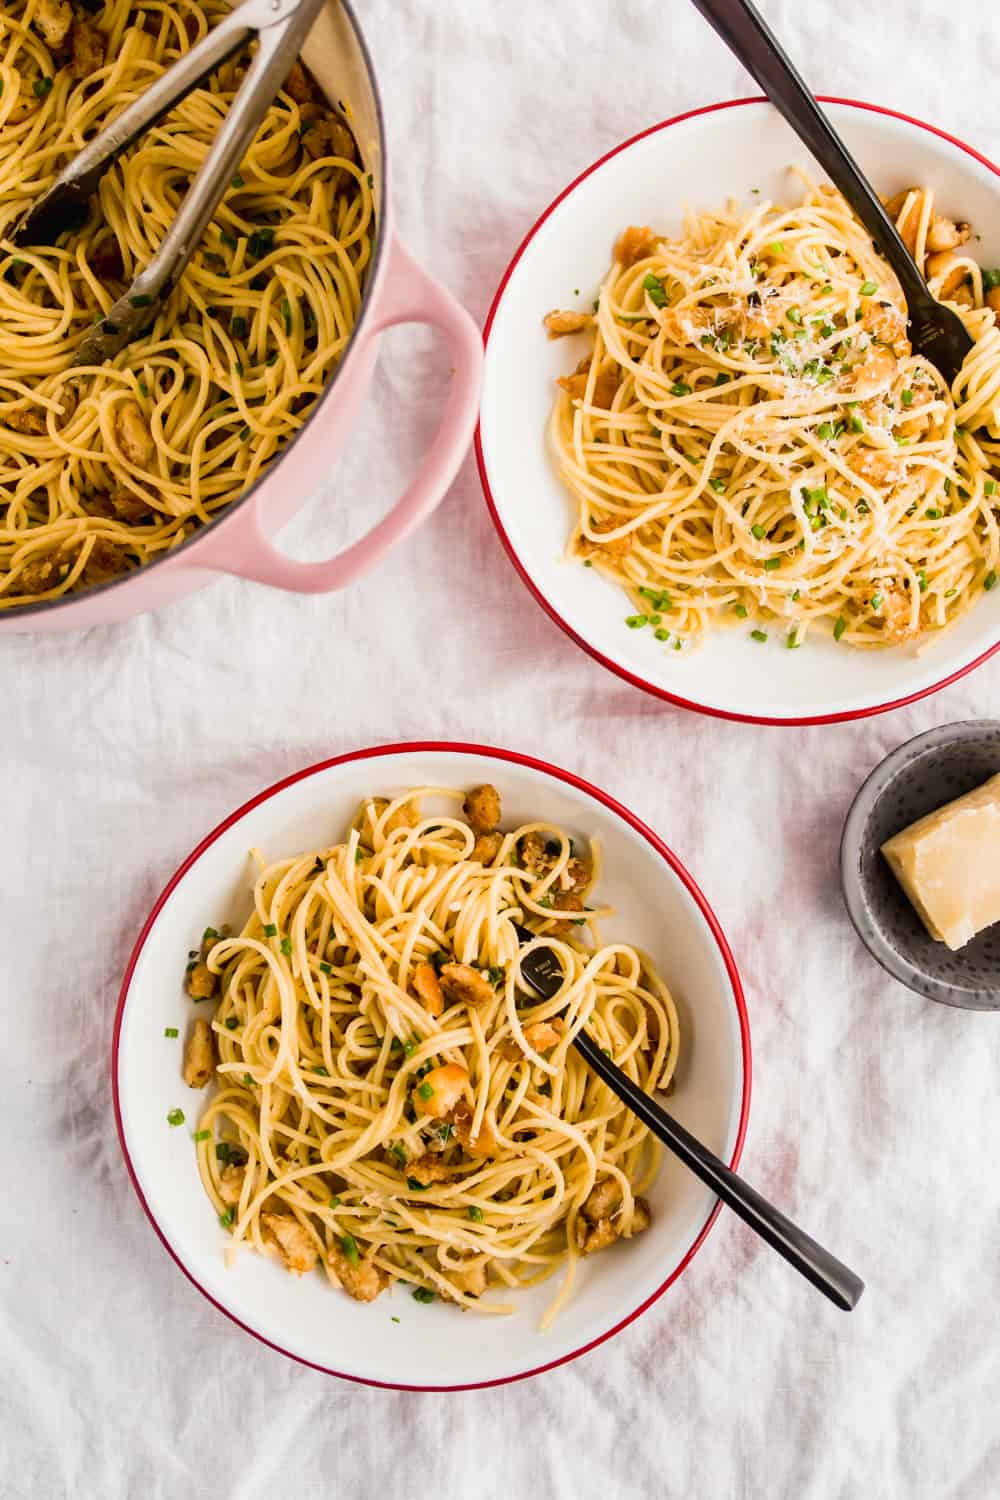 Two servings of Spaghetti with garlic herb breadcrumbs in white bowls. Large pot of spaghetti.